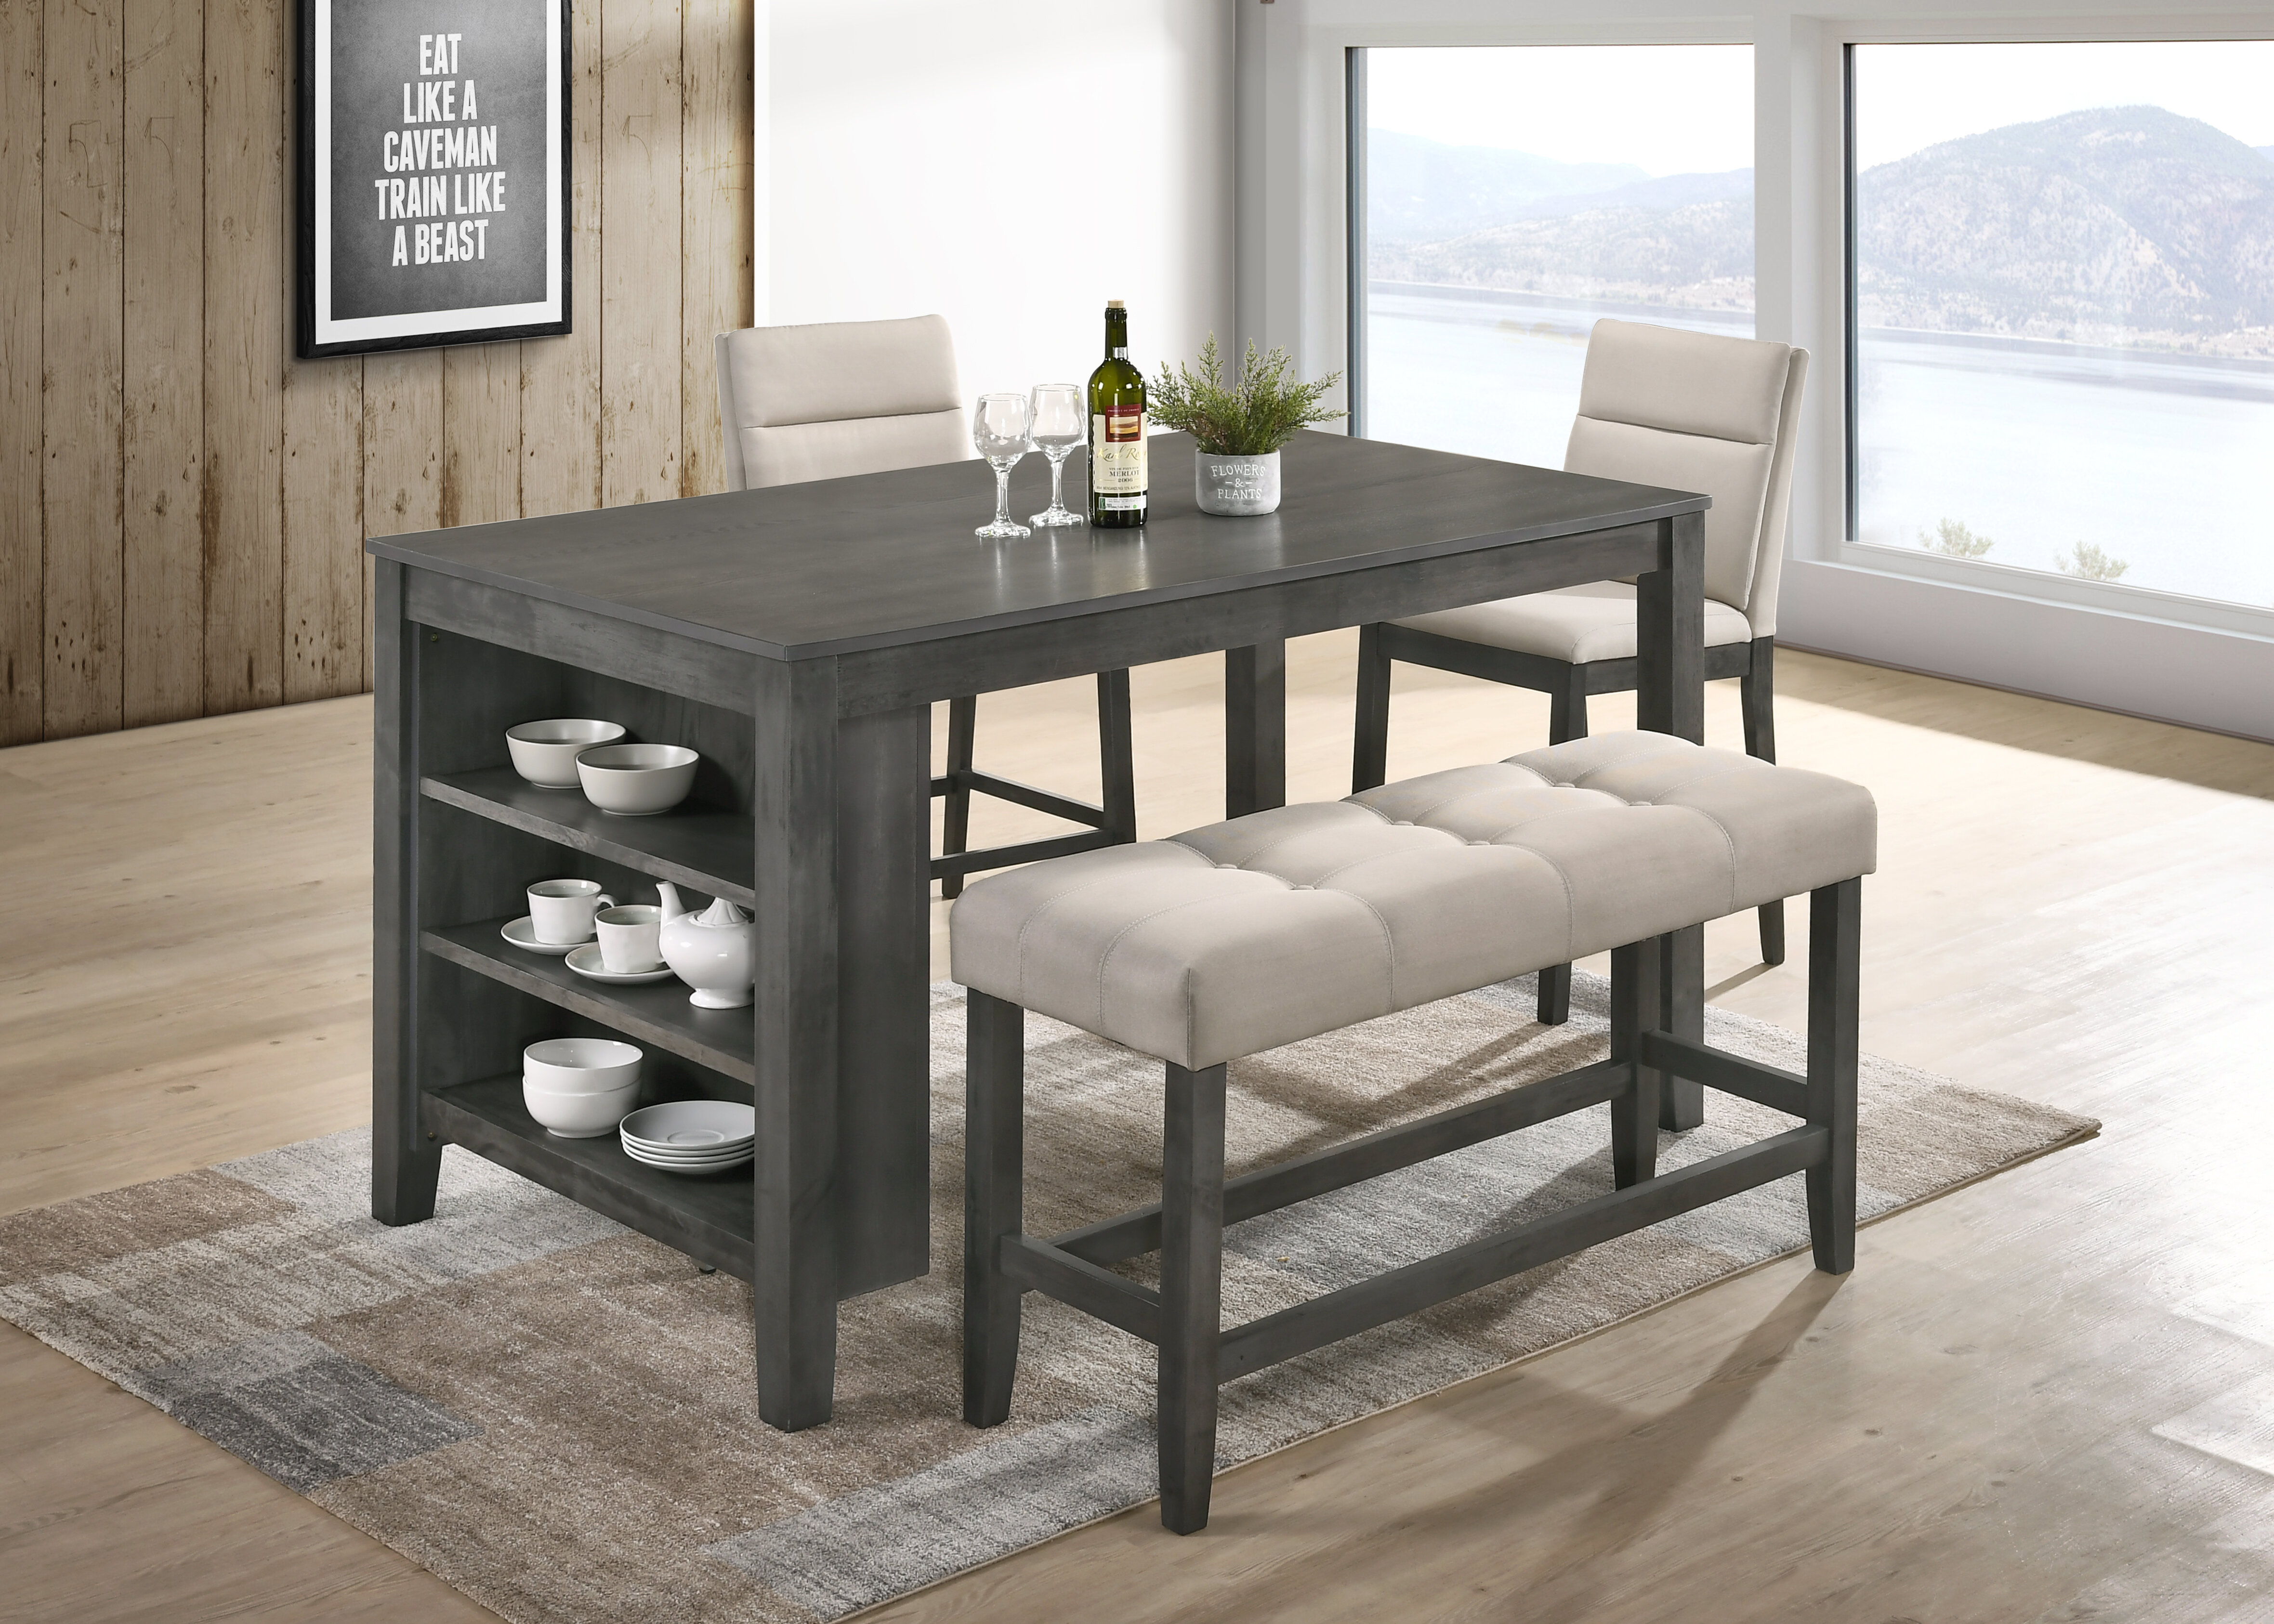 Marvelous Counter Height Dining Set With Bench Avalonit Net Creativecarmelina Interior Chair Design Creativecarmelinacom